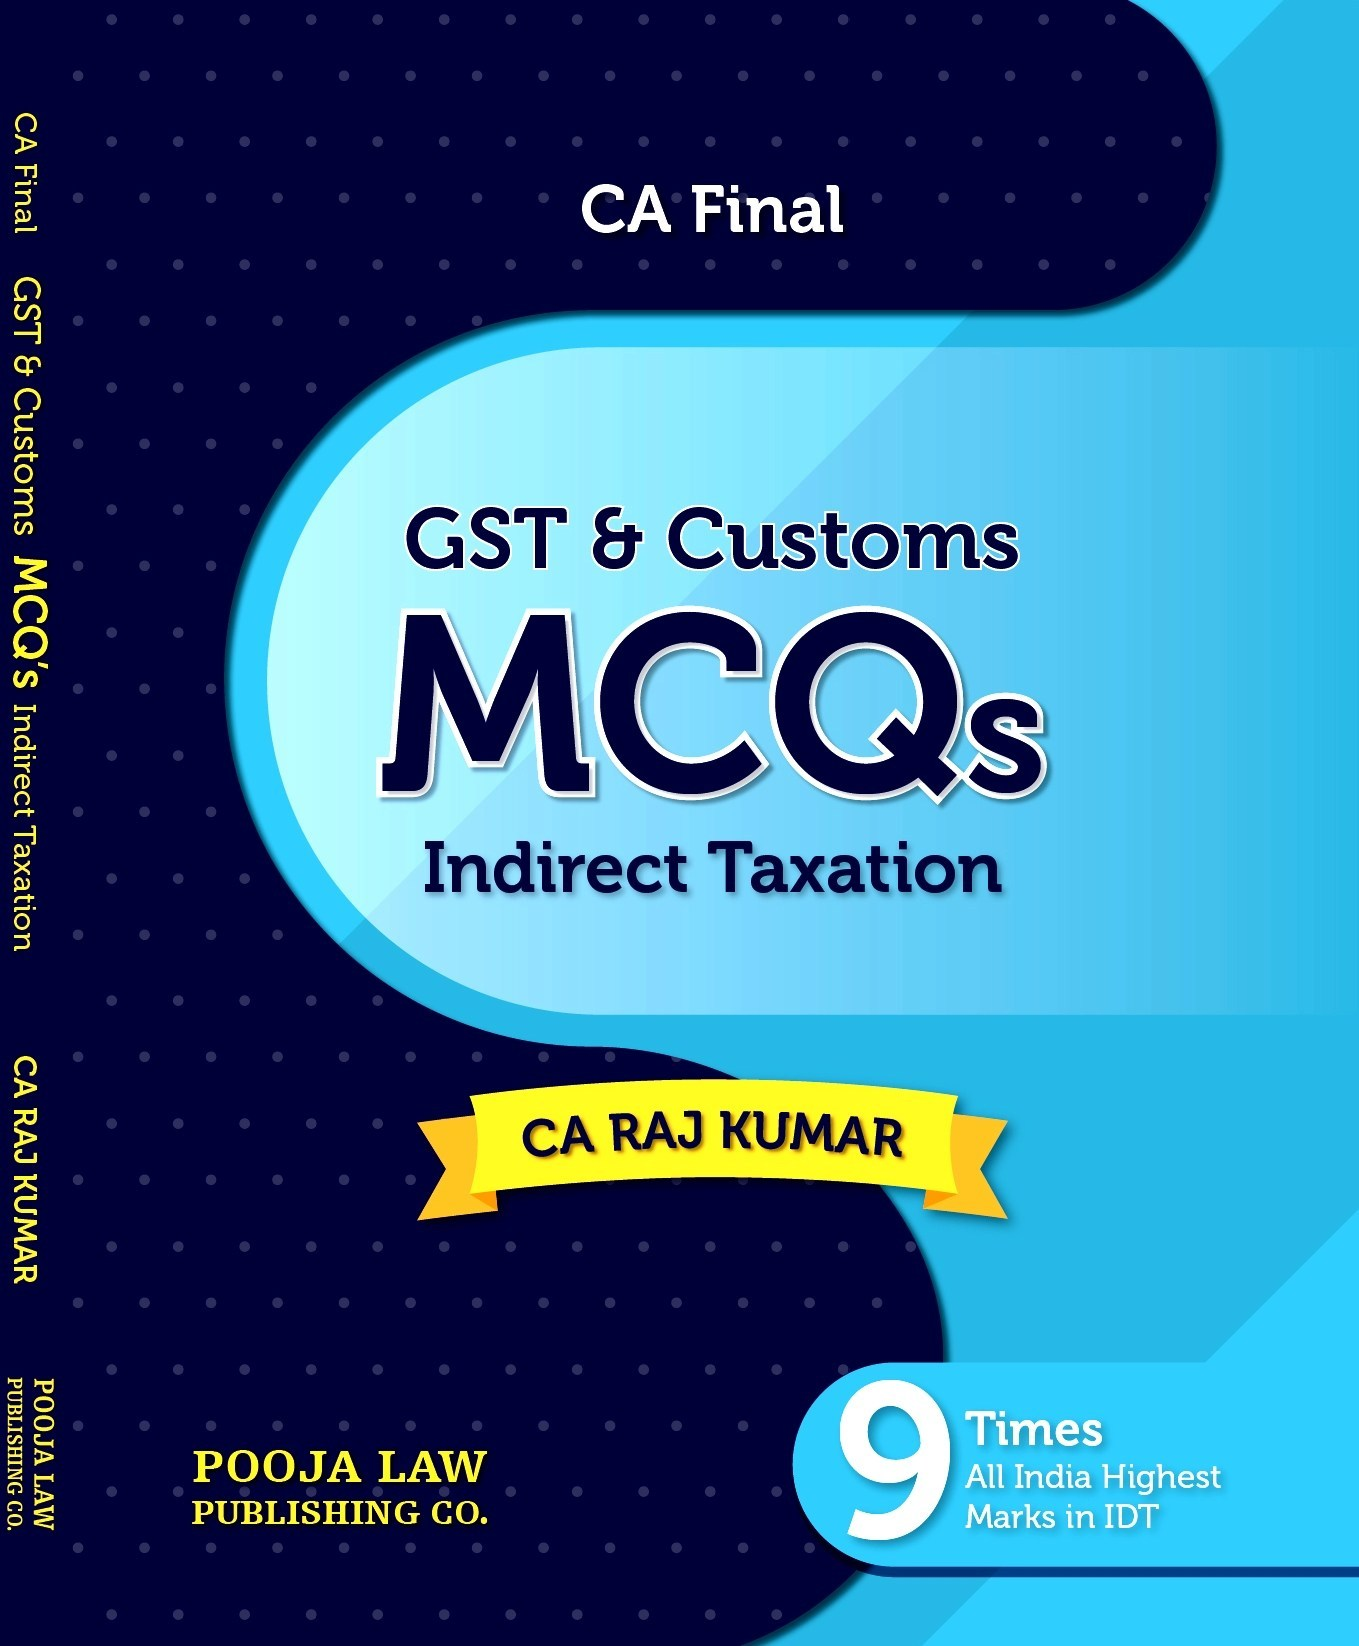 Pooja Law House Indirect Taxation MCQs On GST And Customs Old And New Syllabus for CA Final By CA Raj Kumar Applicable for Nov 2019 Exam